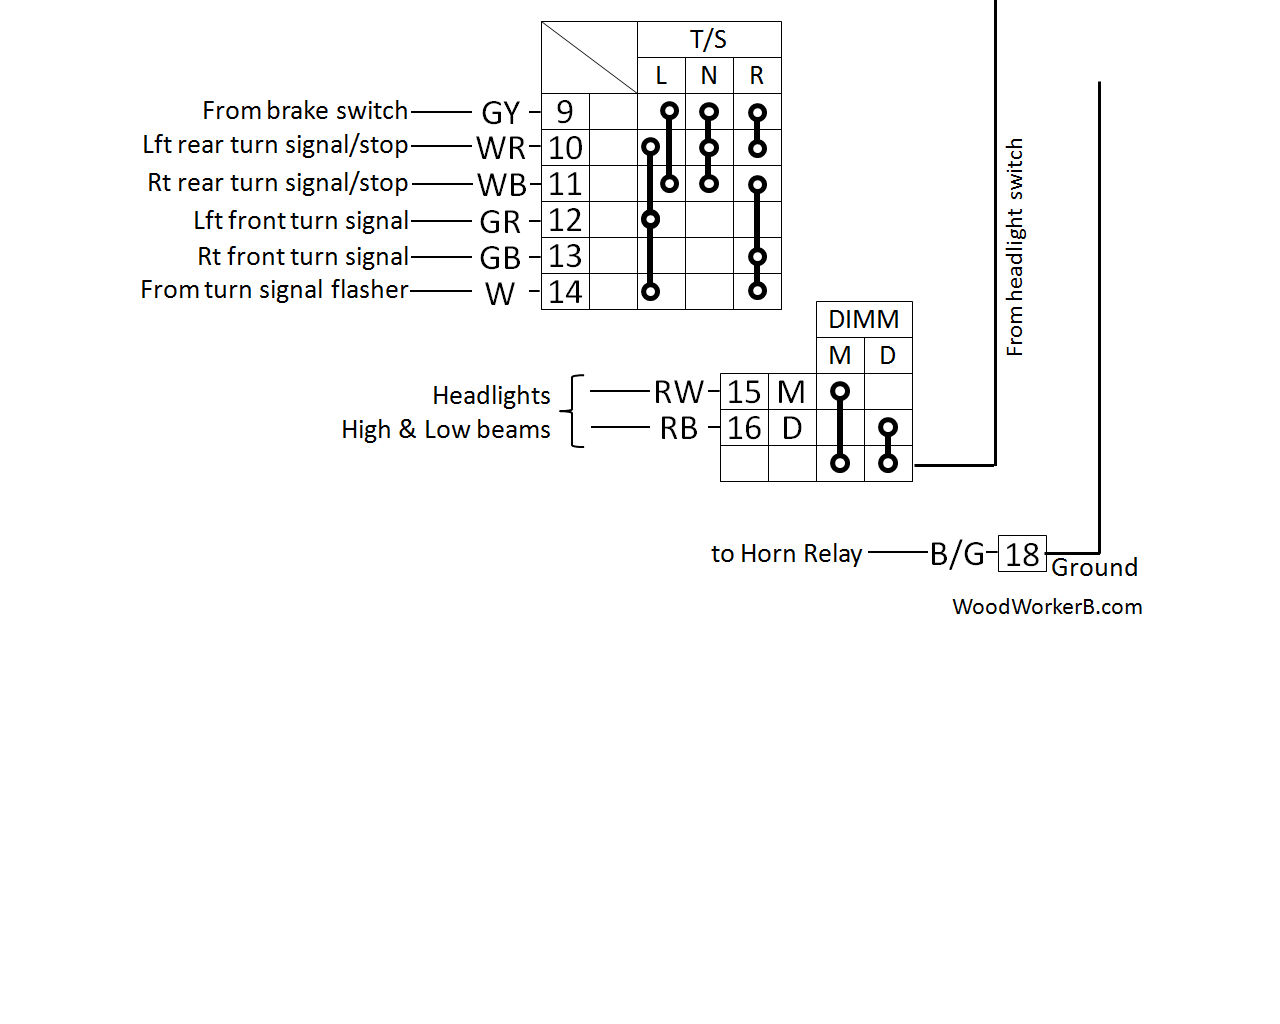 240z Multifunction Switches Woodworkerb Single Headlight Schematic Click Image For Larger View